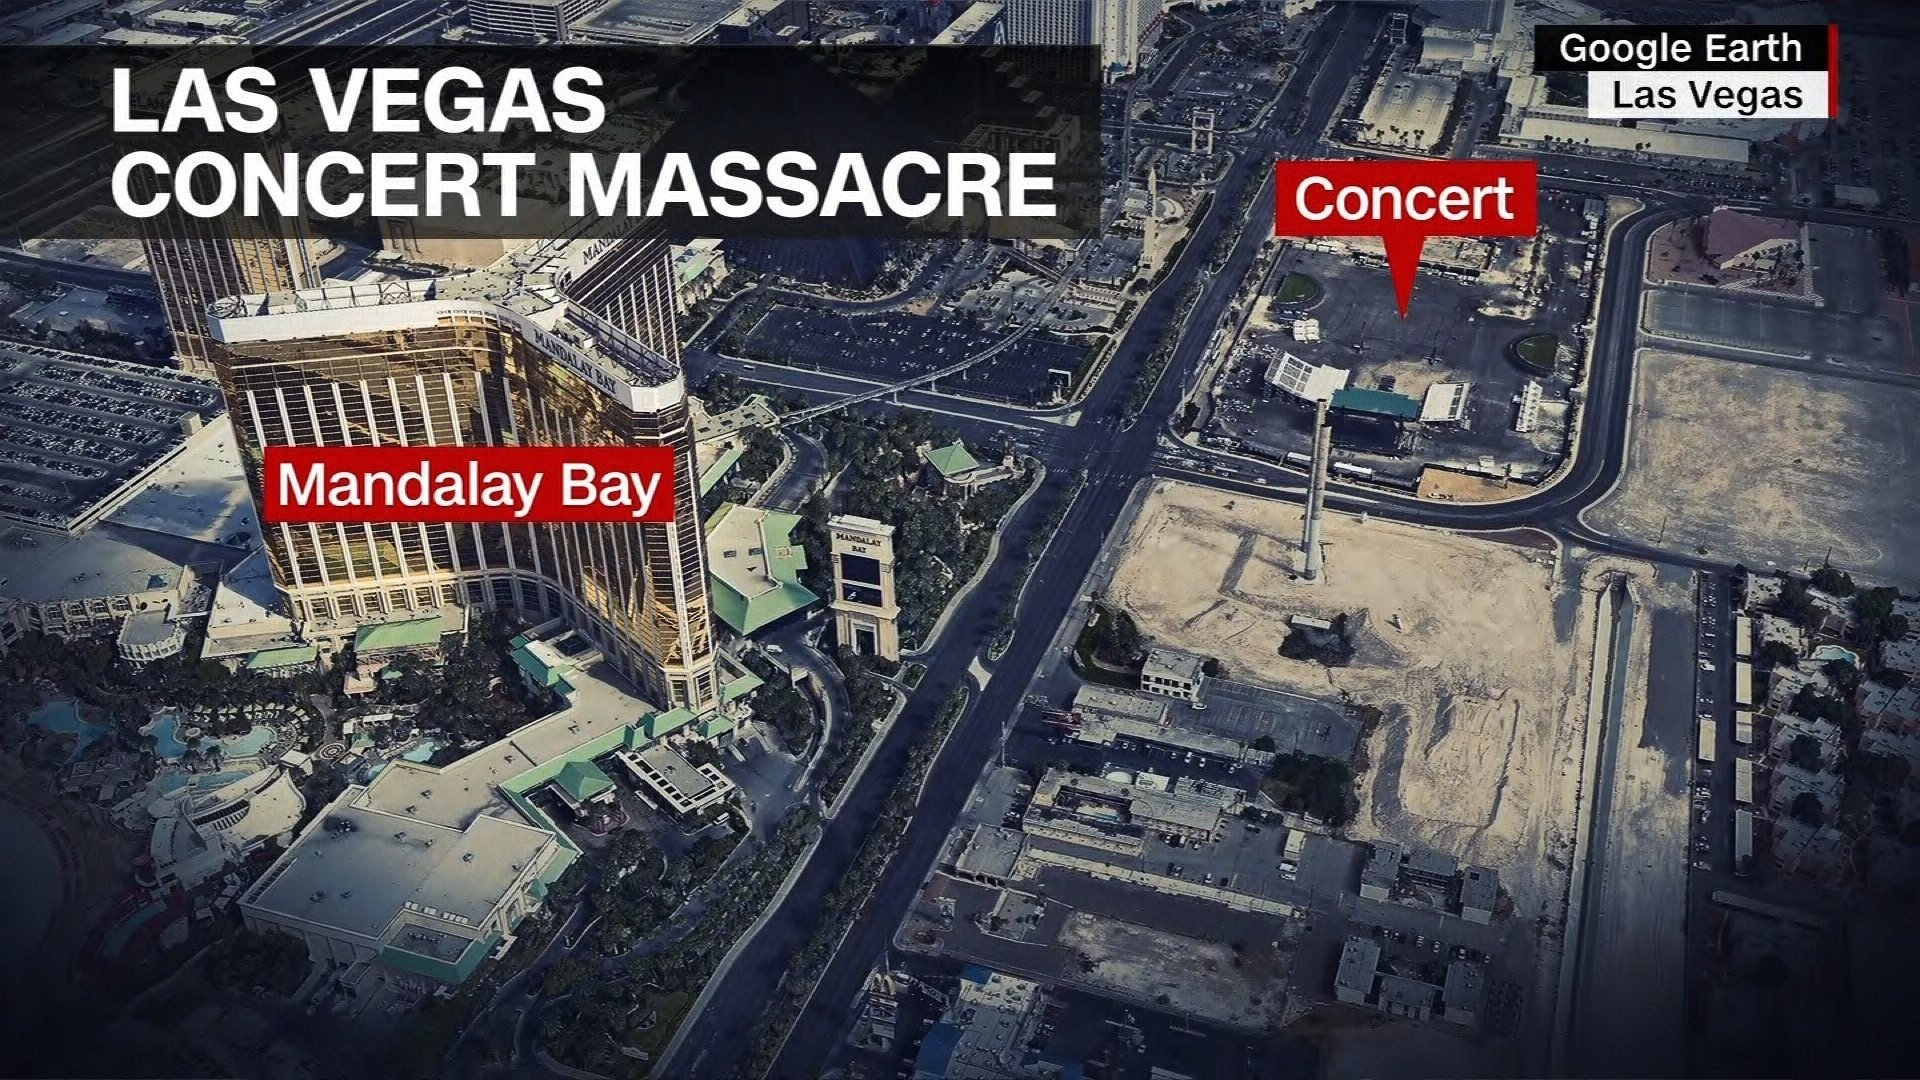 Las Vegas gunman's girlfriend returning to USA to clear name